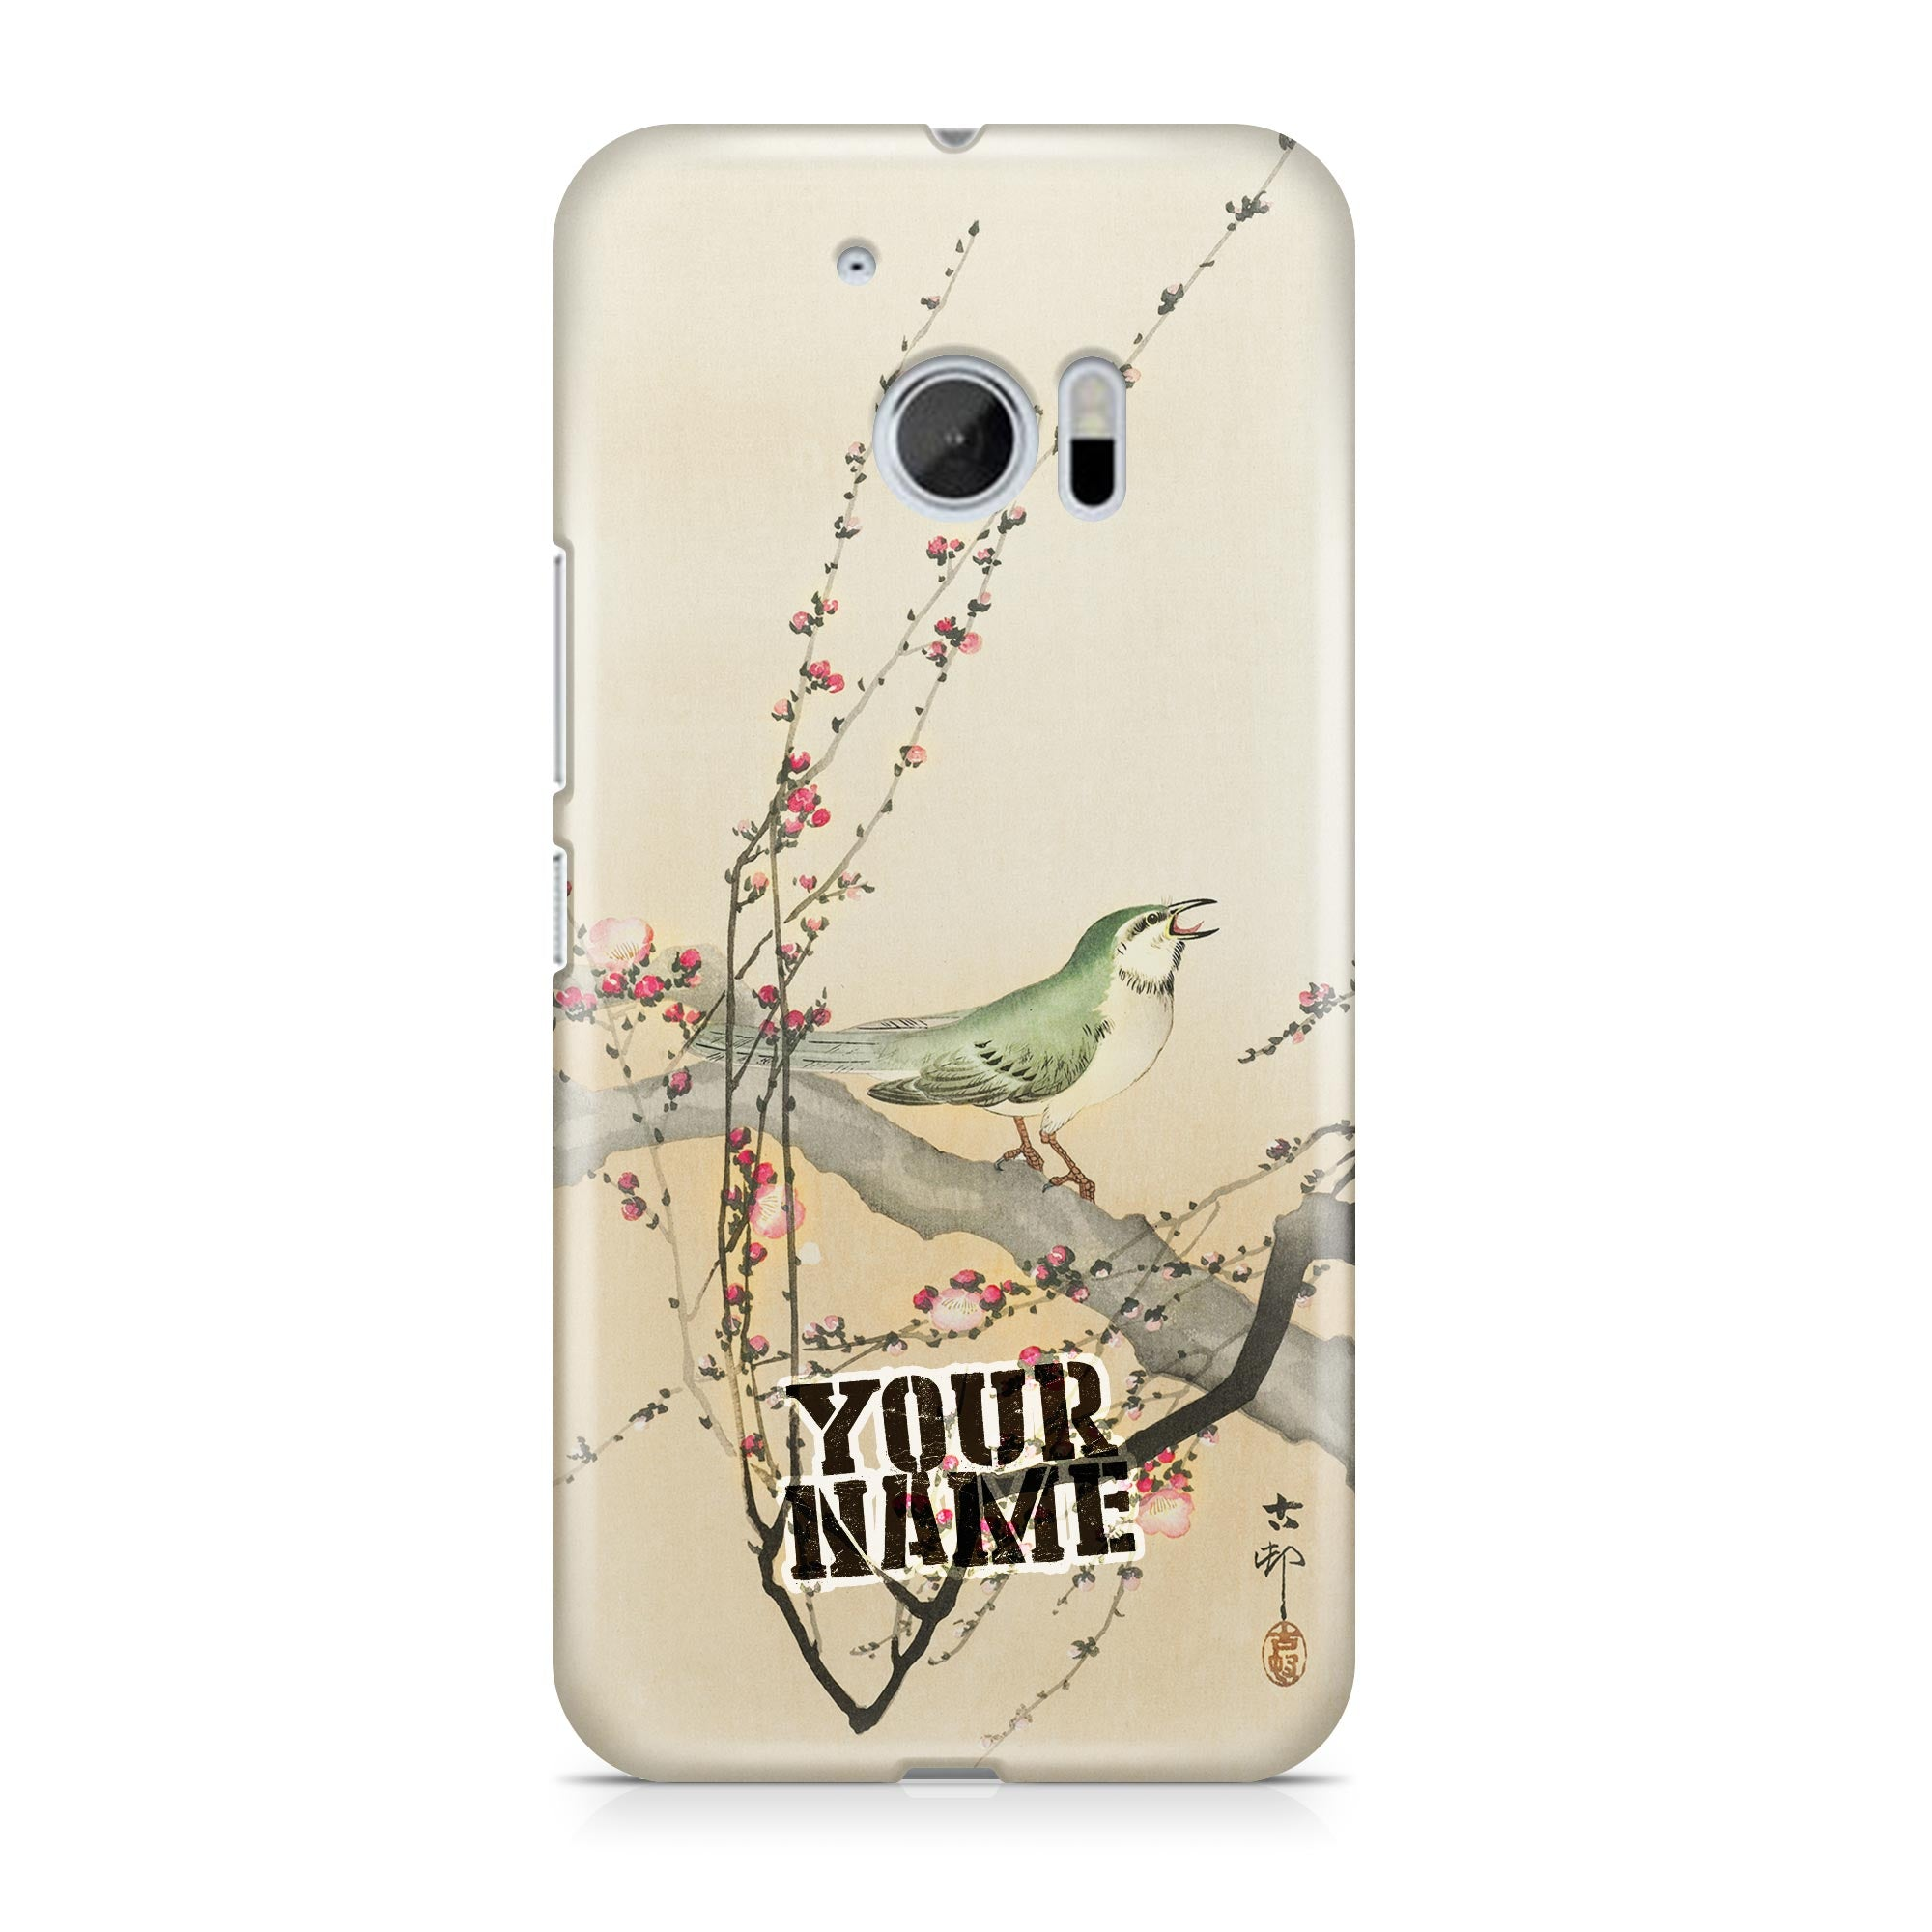 Green Birds Legendary Japanese Art Phone Cases Cover